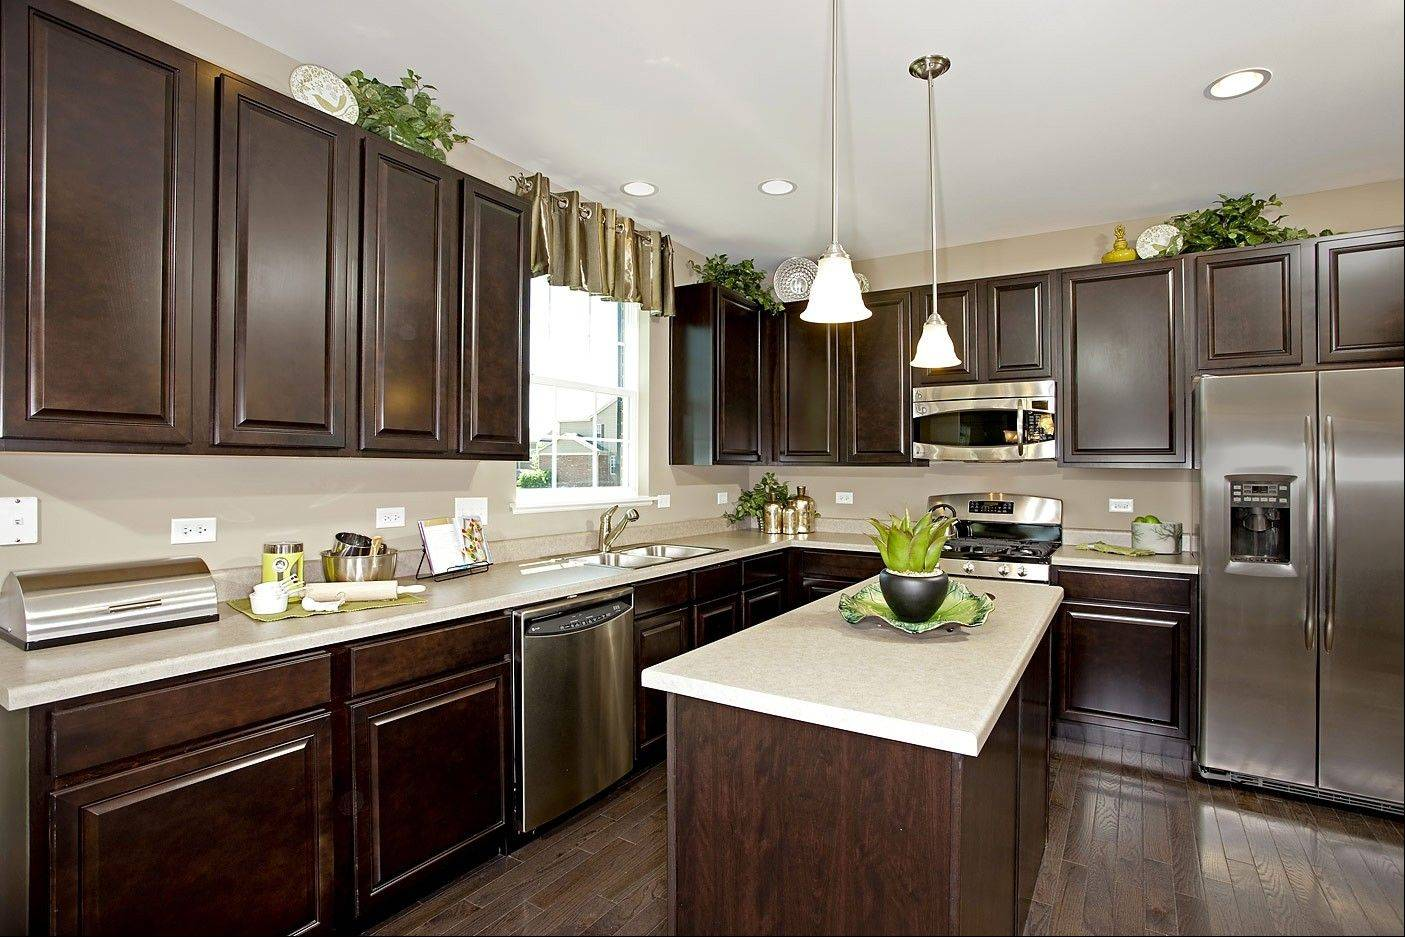 Ryland Homes offers energy-efficient, Energy Star-certified kitchen appliances at its communities. This is itsPrairiestone model at Herrington Estates in Bolingbrook.